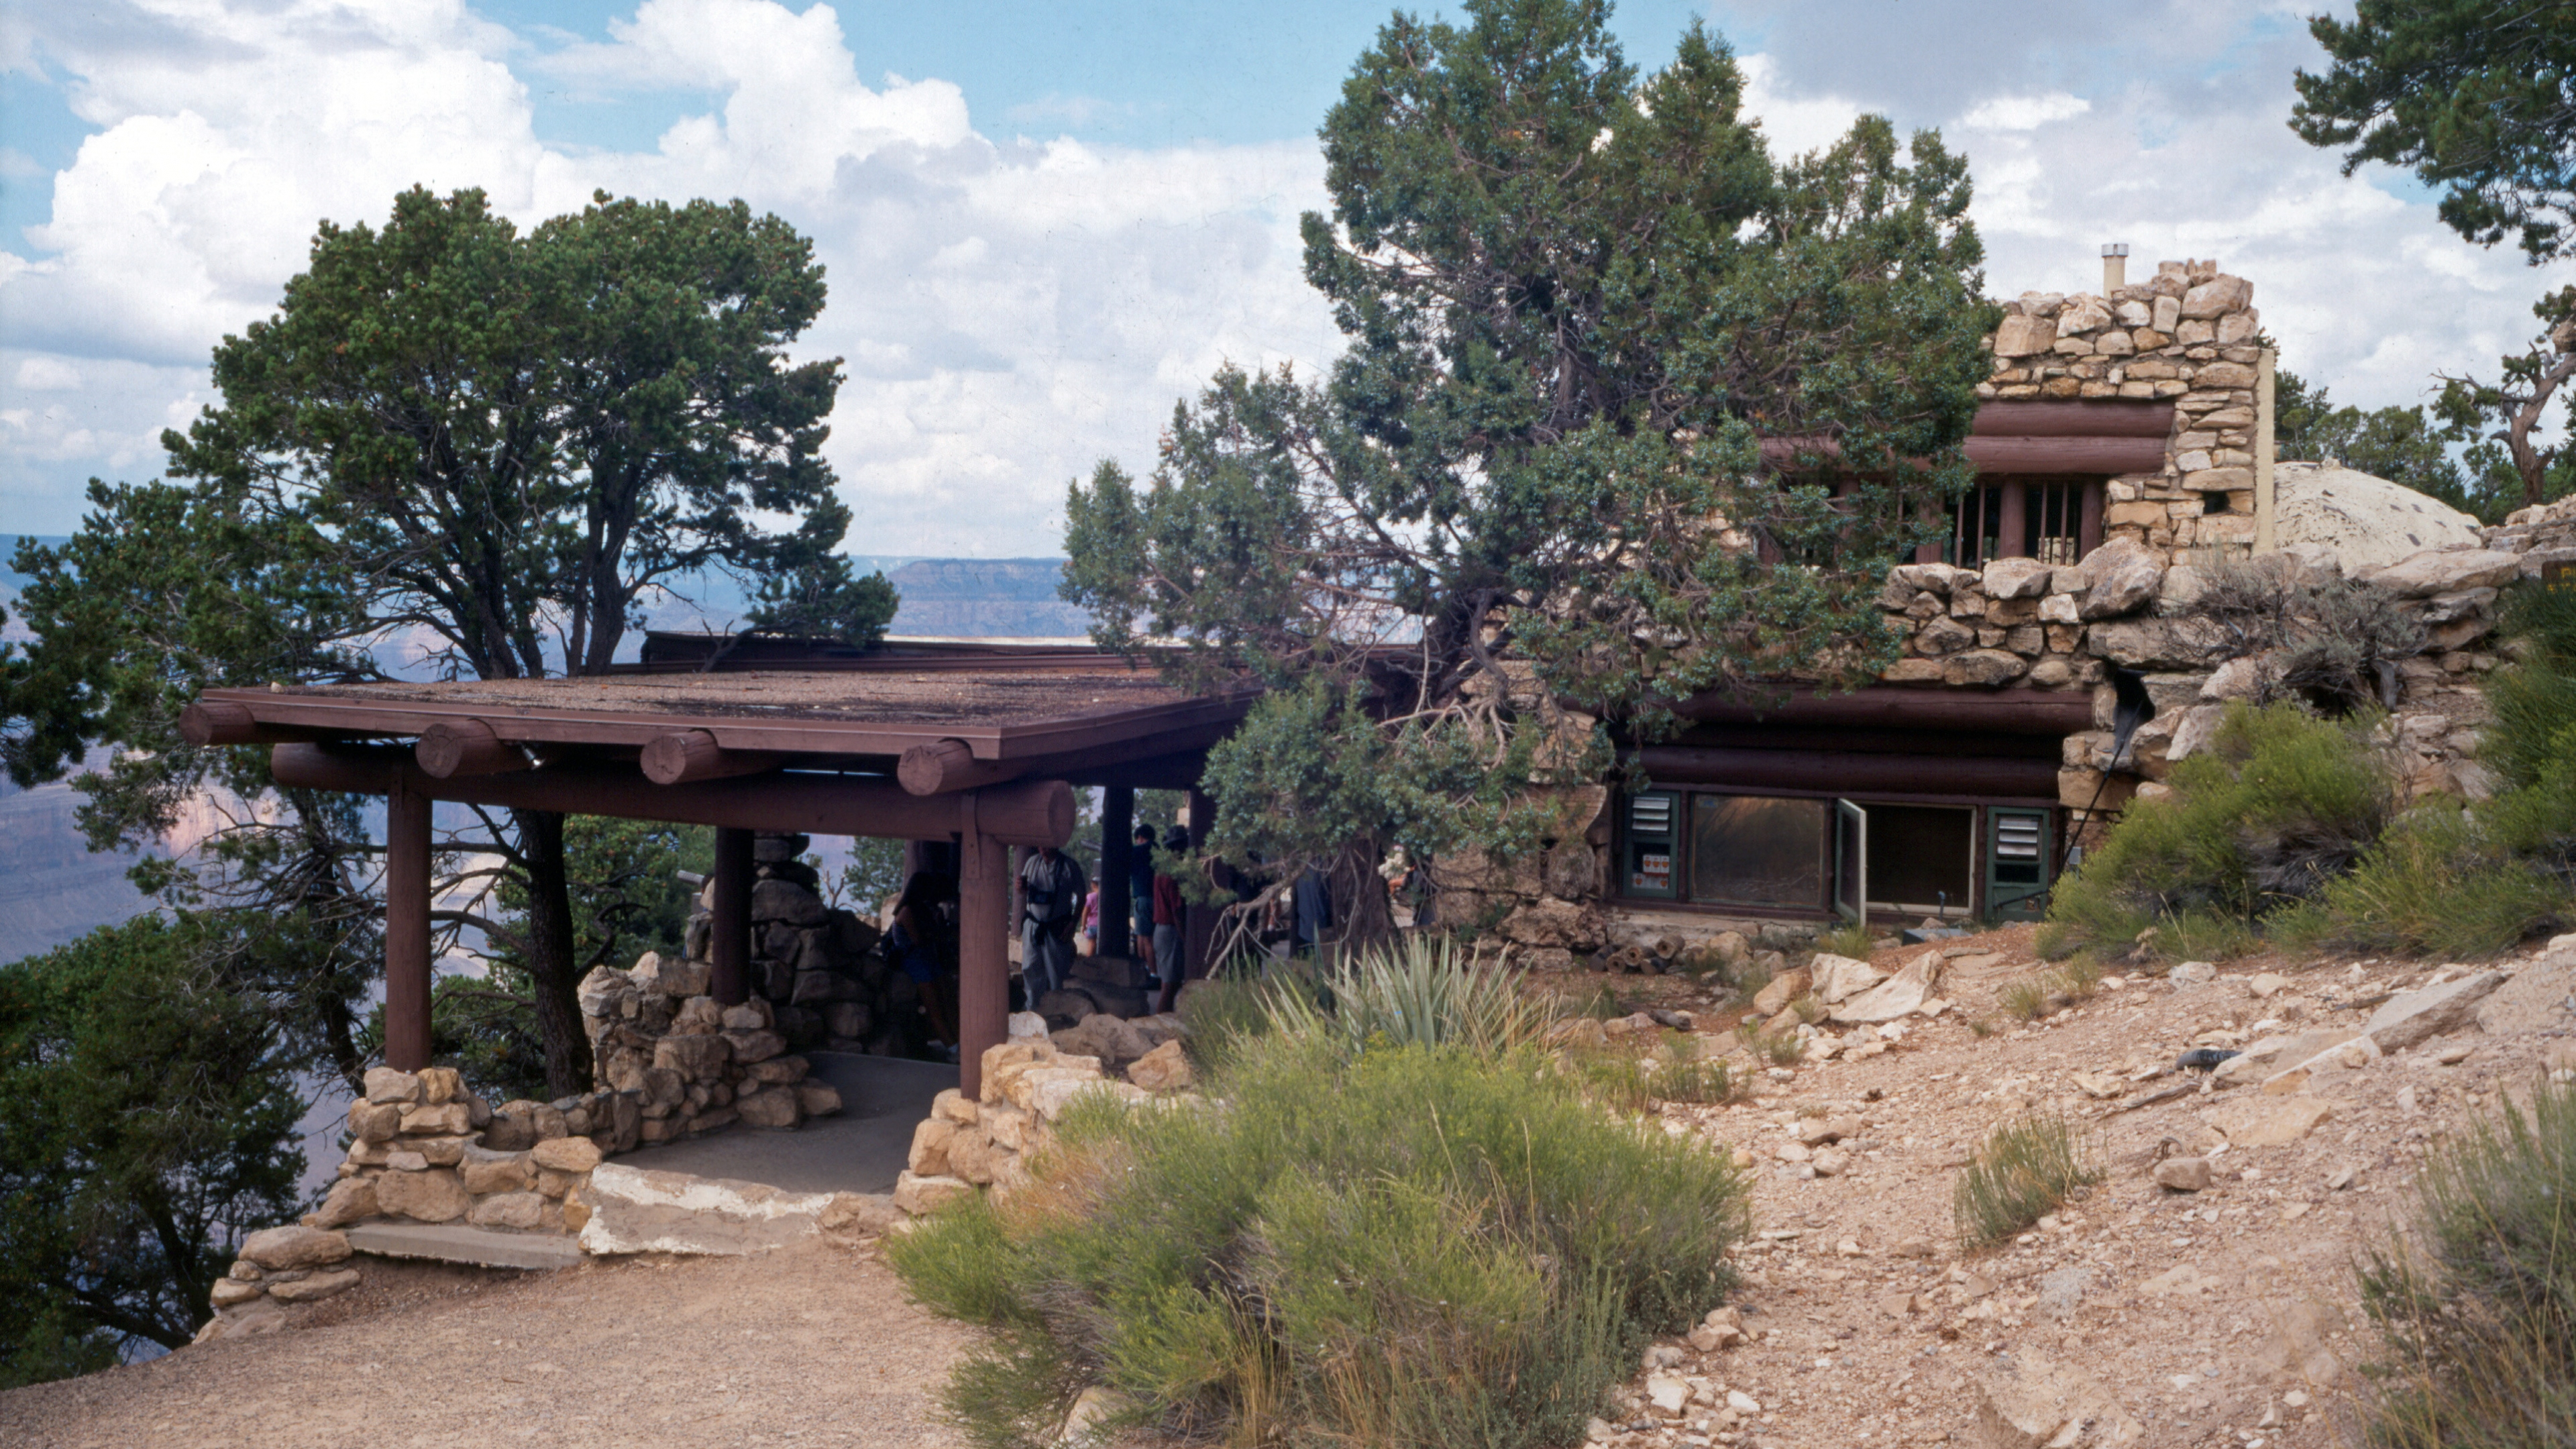 West entrance to the stone Hermit's Rest building at Grand Canyon National Park